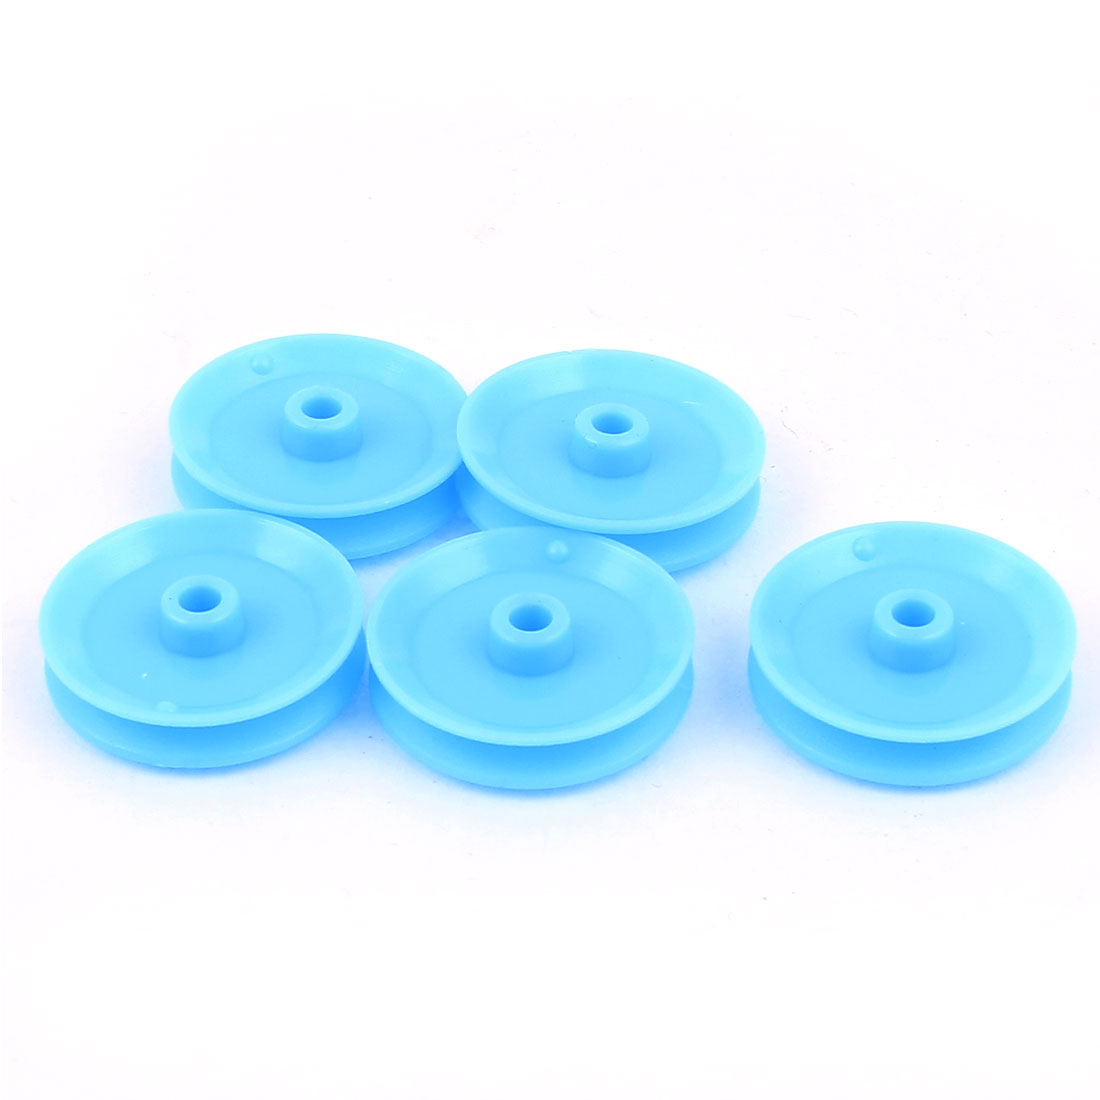 5 Pcs Plastic 29mm Diameter 6mm Thickness DIY Gear Band Pulley Blue